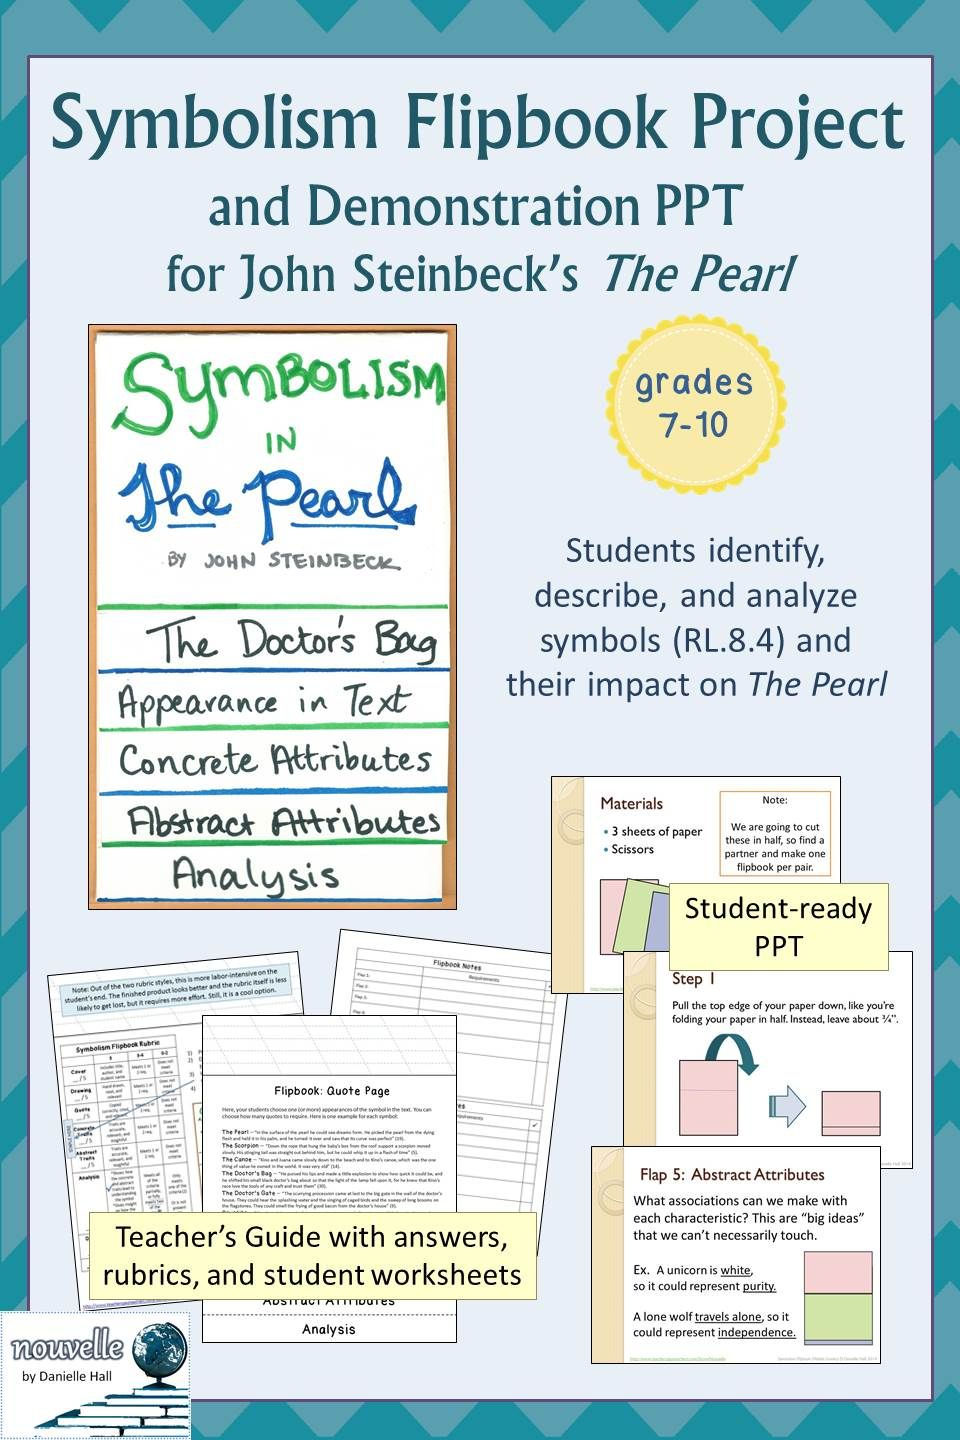 symbolism flipbook and powerpoint the pearl by john steinbeck  symbolism flipbook and powerpoint the pearl by john steinbeck